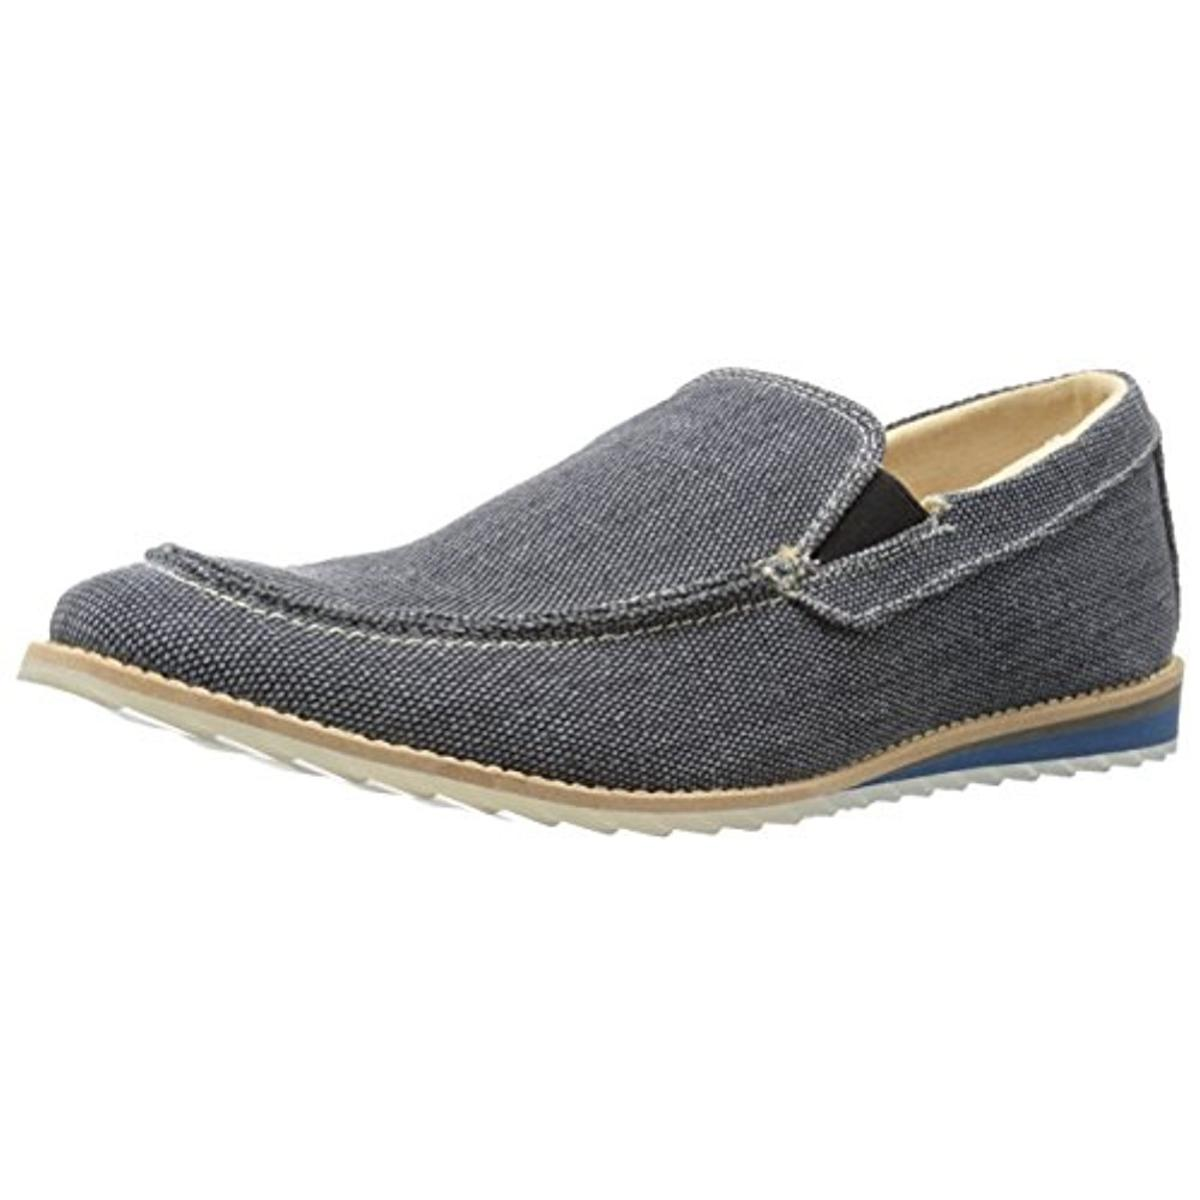 GBX Mens Flix Canvas Slip On Loafers by GBX